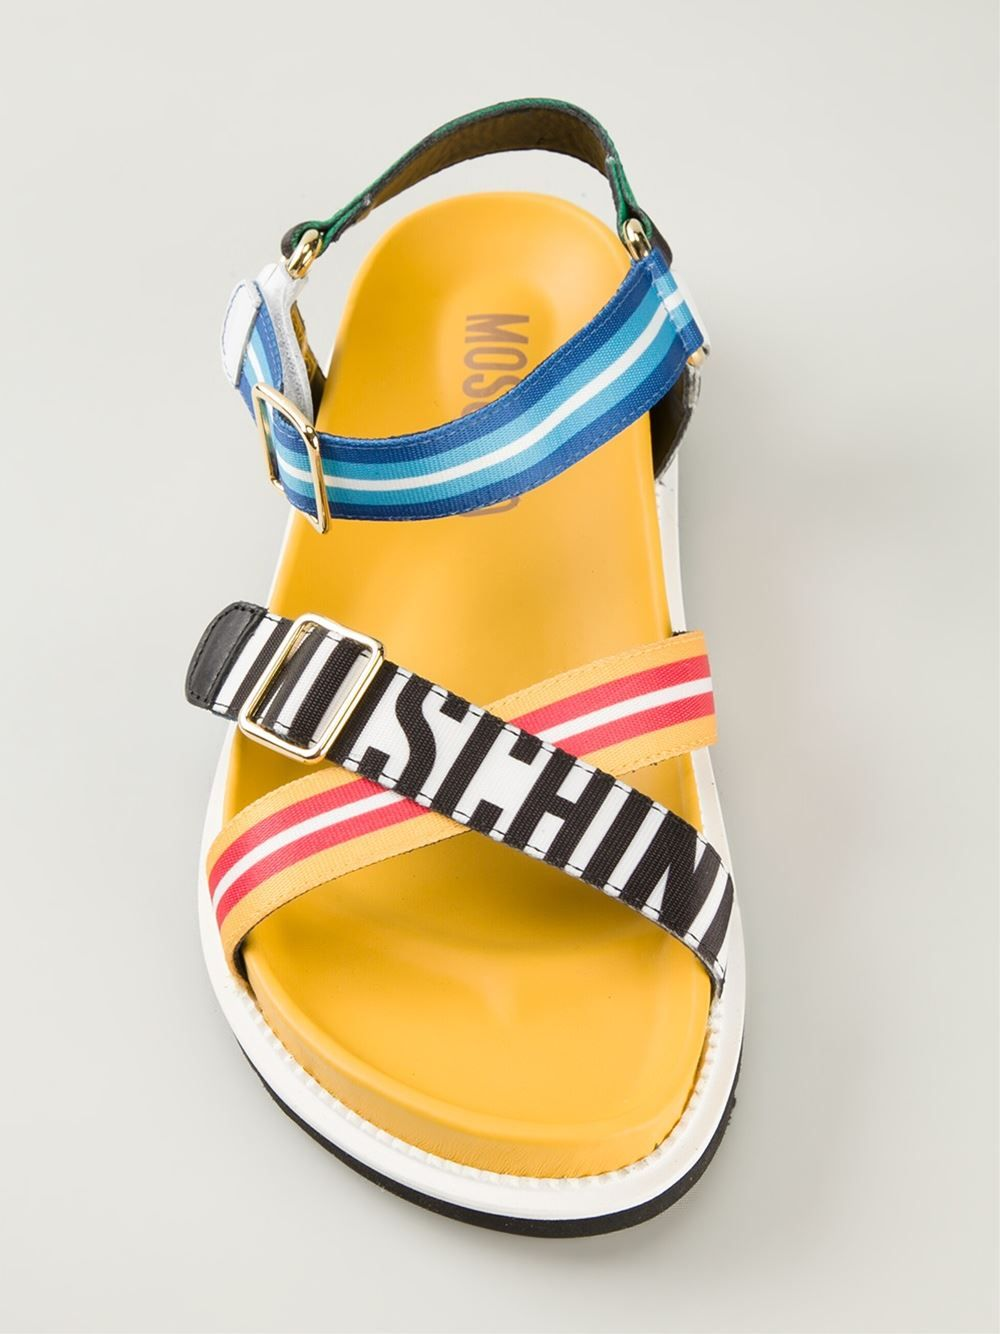 93625243ac6 Moschino striped sandals in multicolor for men hot shoes pinterest jpg  1000x1334 Multicolor sandals men